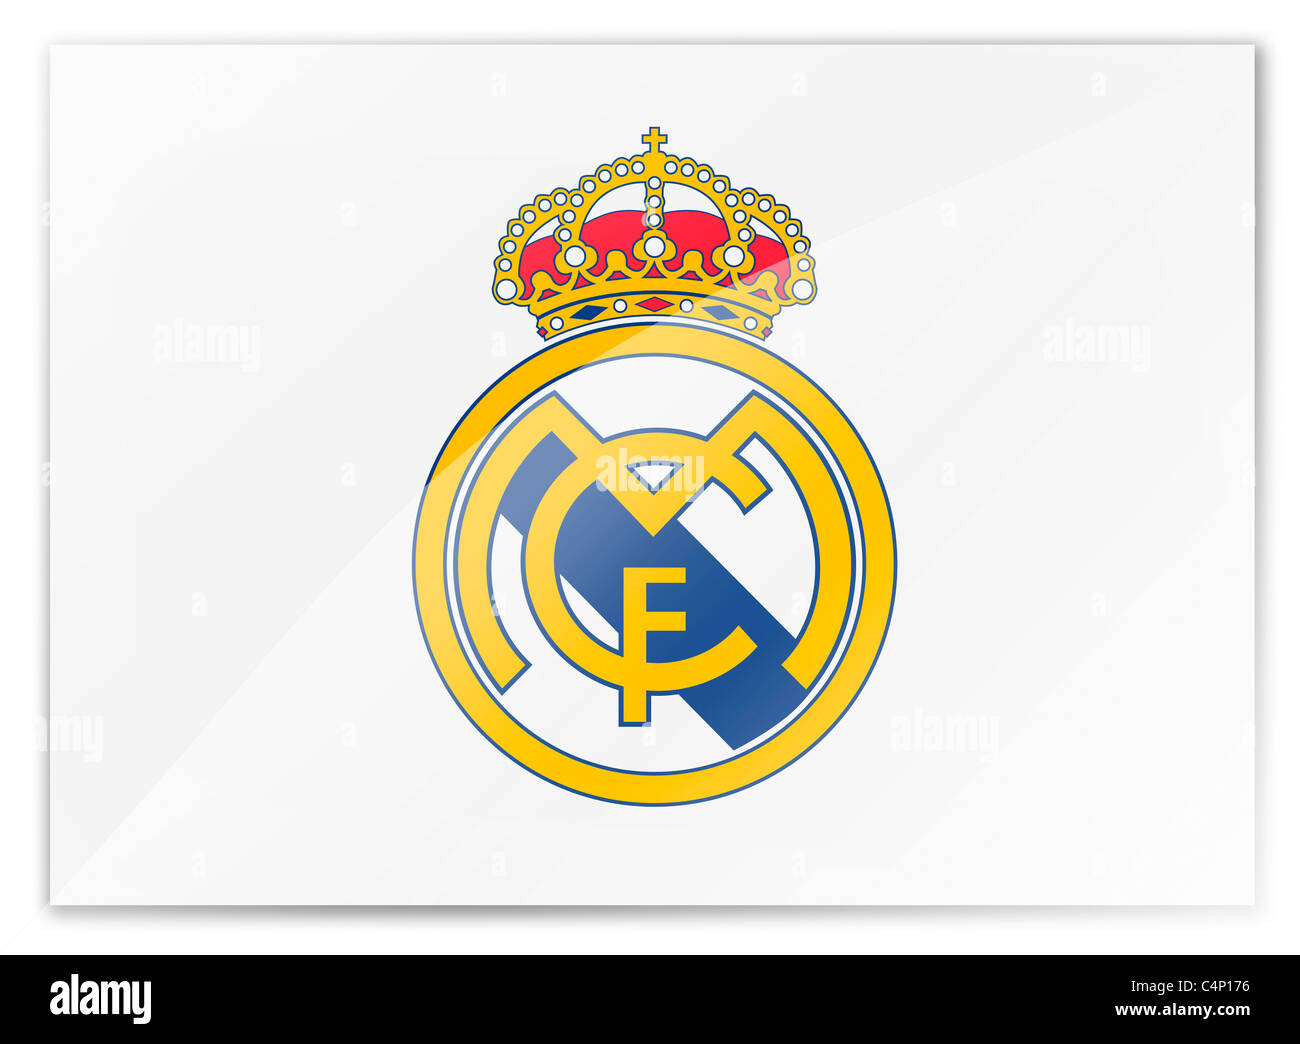 Real madrid cf logo symbol flag stock photo royalty free image real madrid cf logo symbol flag voltagebd Images